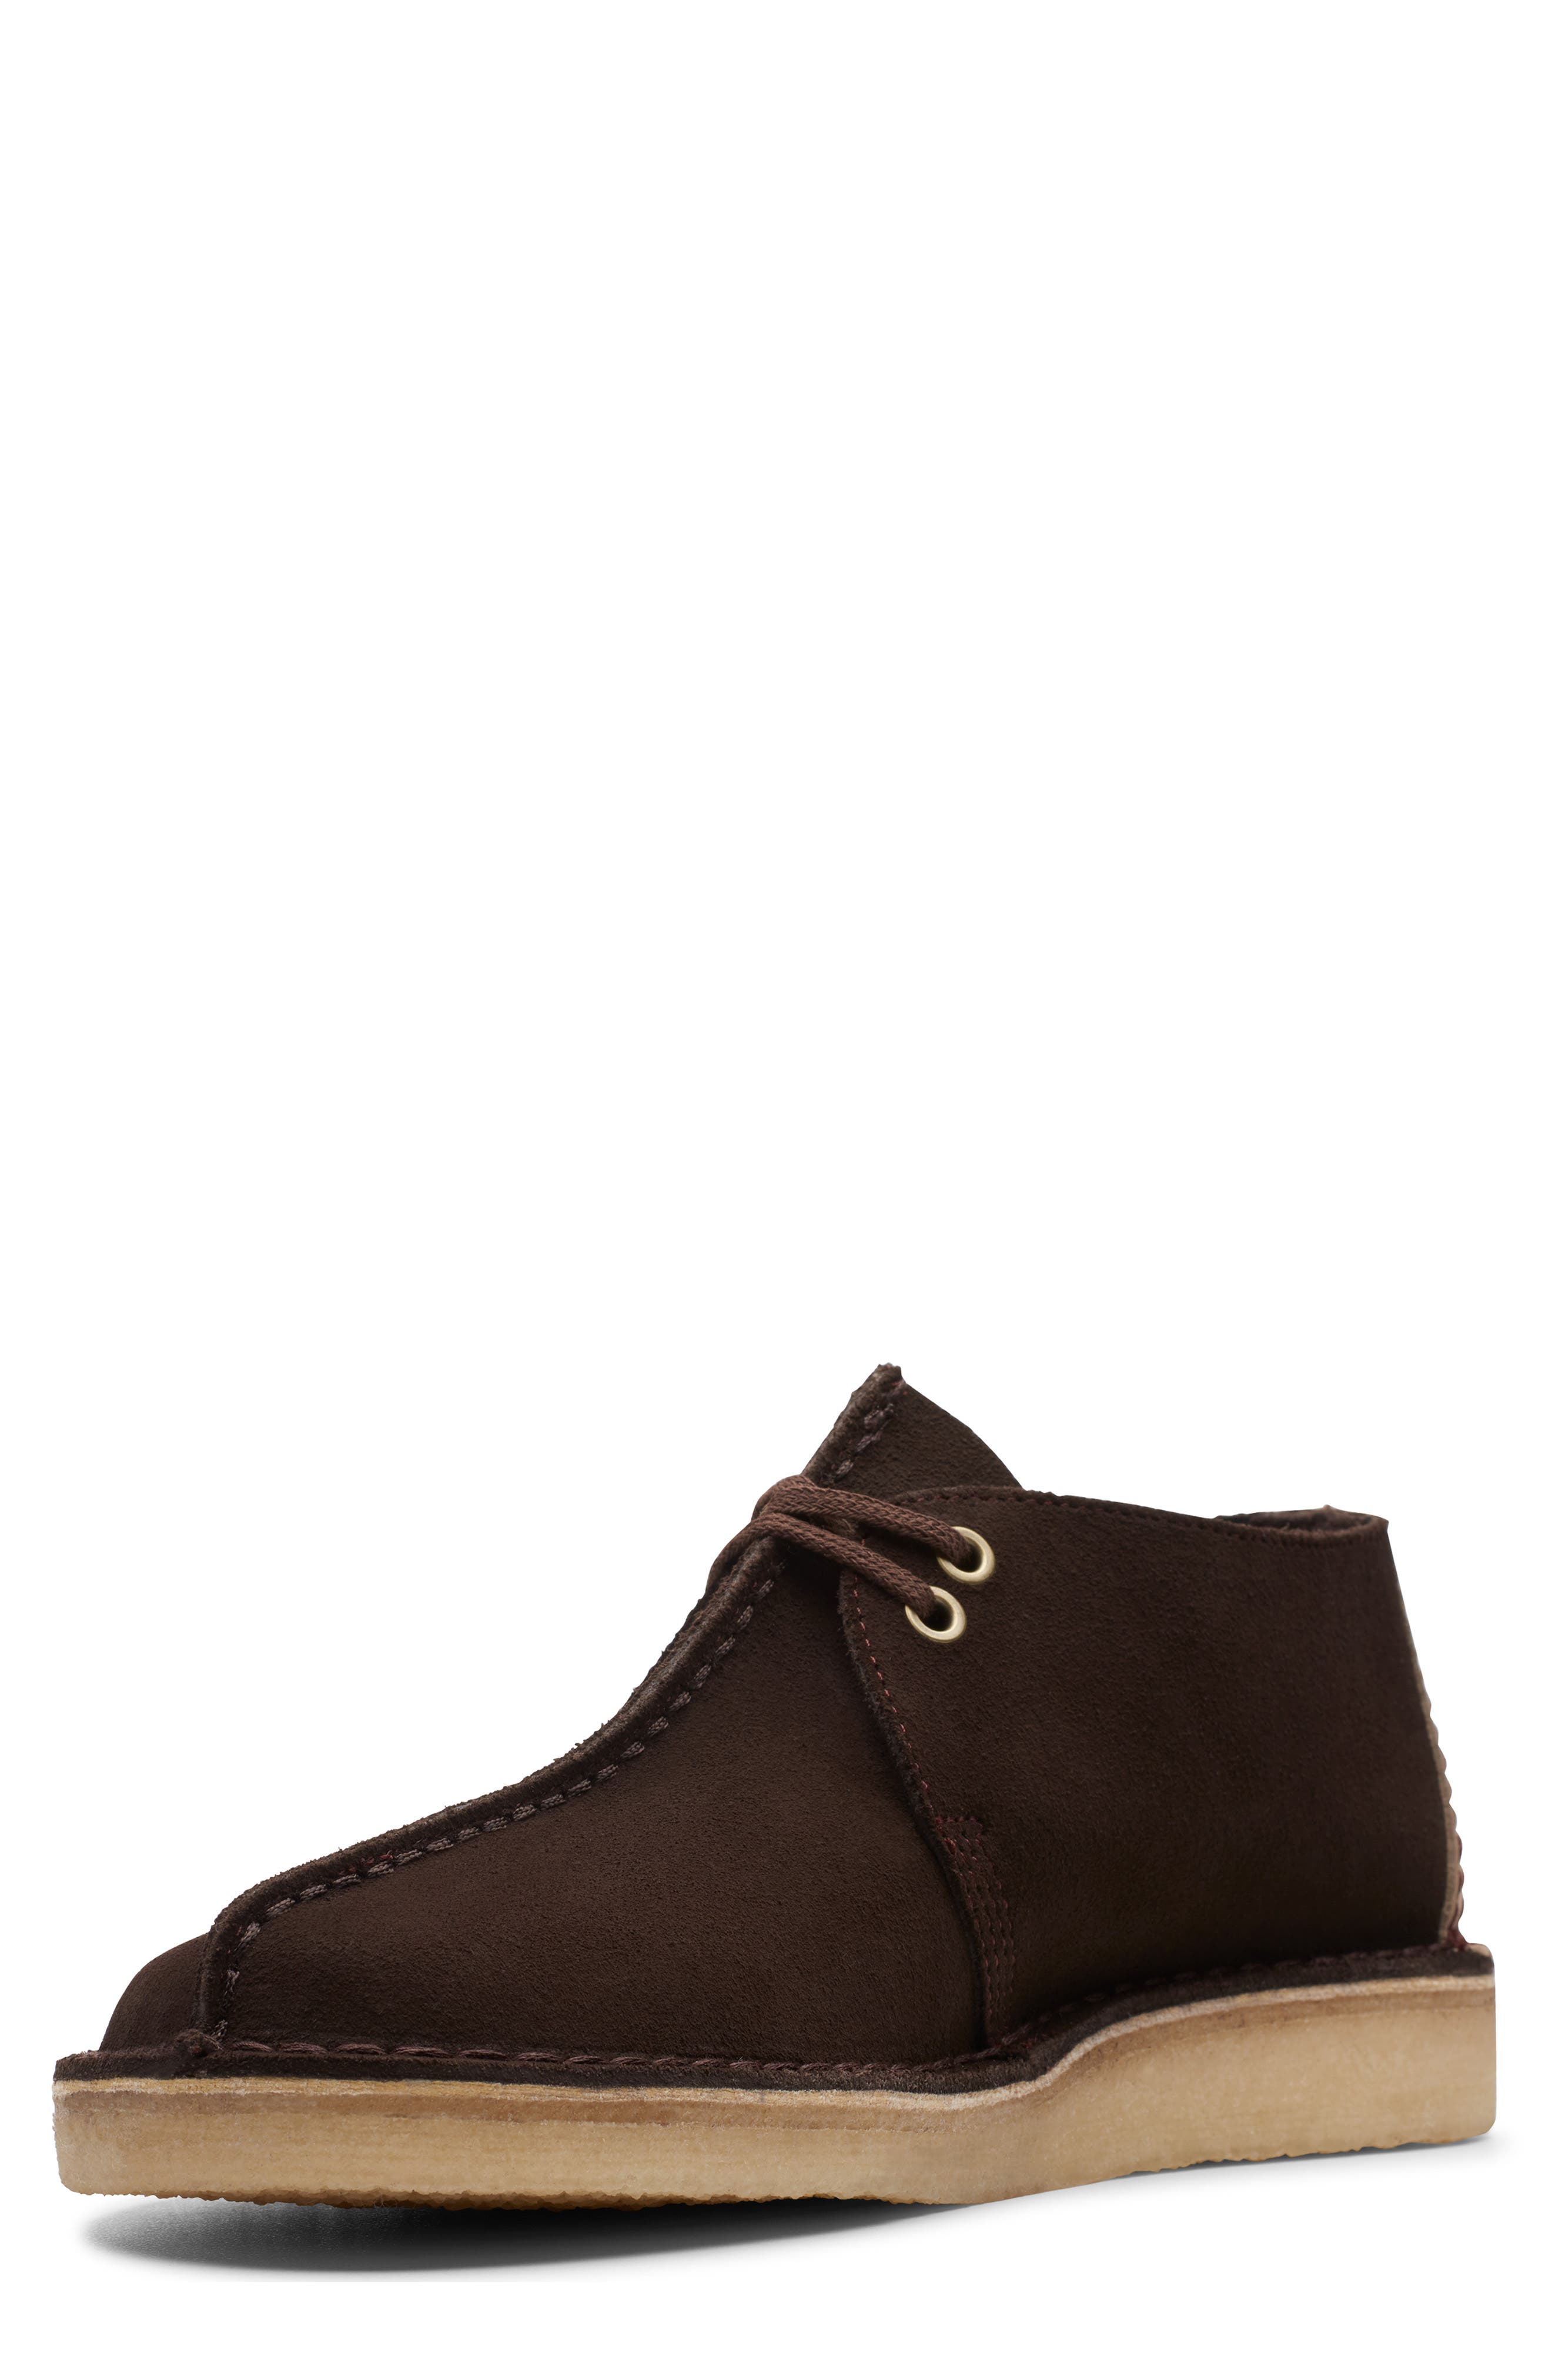 CLARKS<SUP>®</SUP>, Desert Trek Chukka Boot, Alternate thumbnail 6, color, DARK BROWN SUEDE